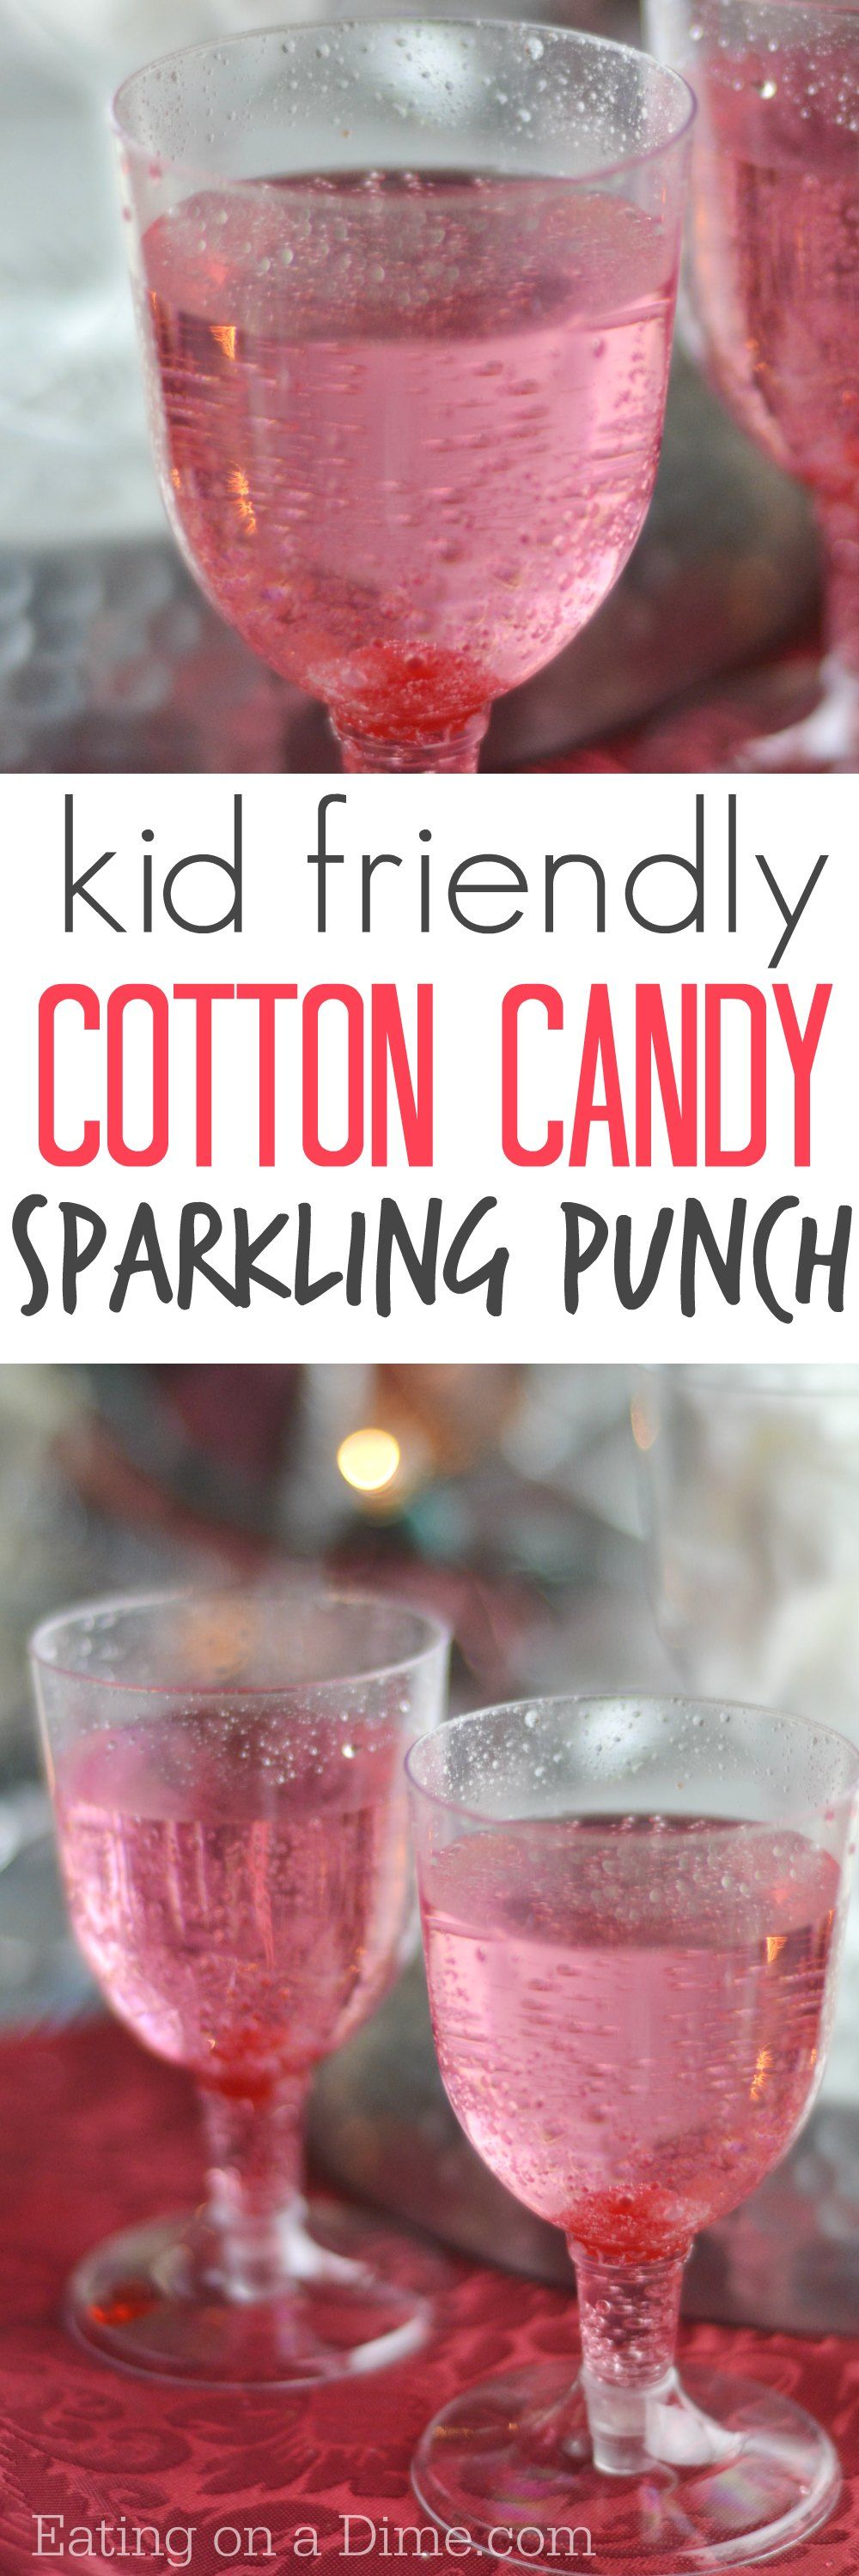 Kid Friendly Cotton Candy Drink Recipe | Cotton candy drinks ...